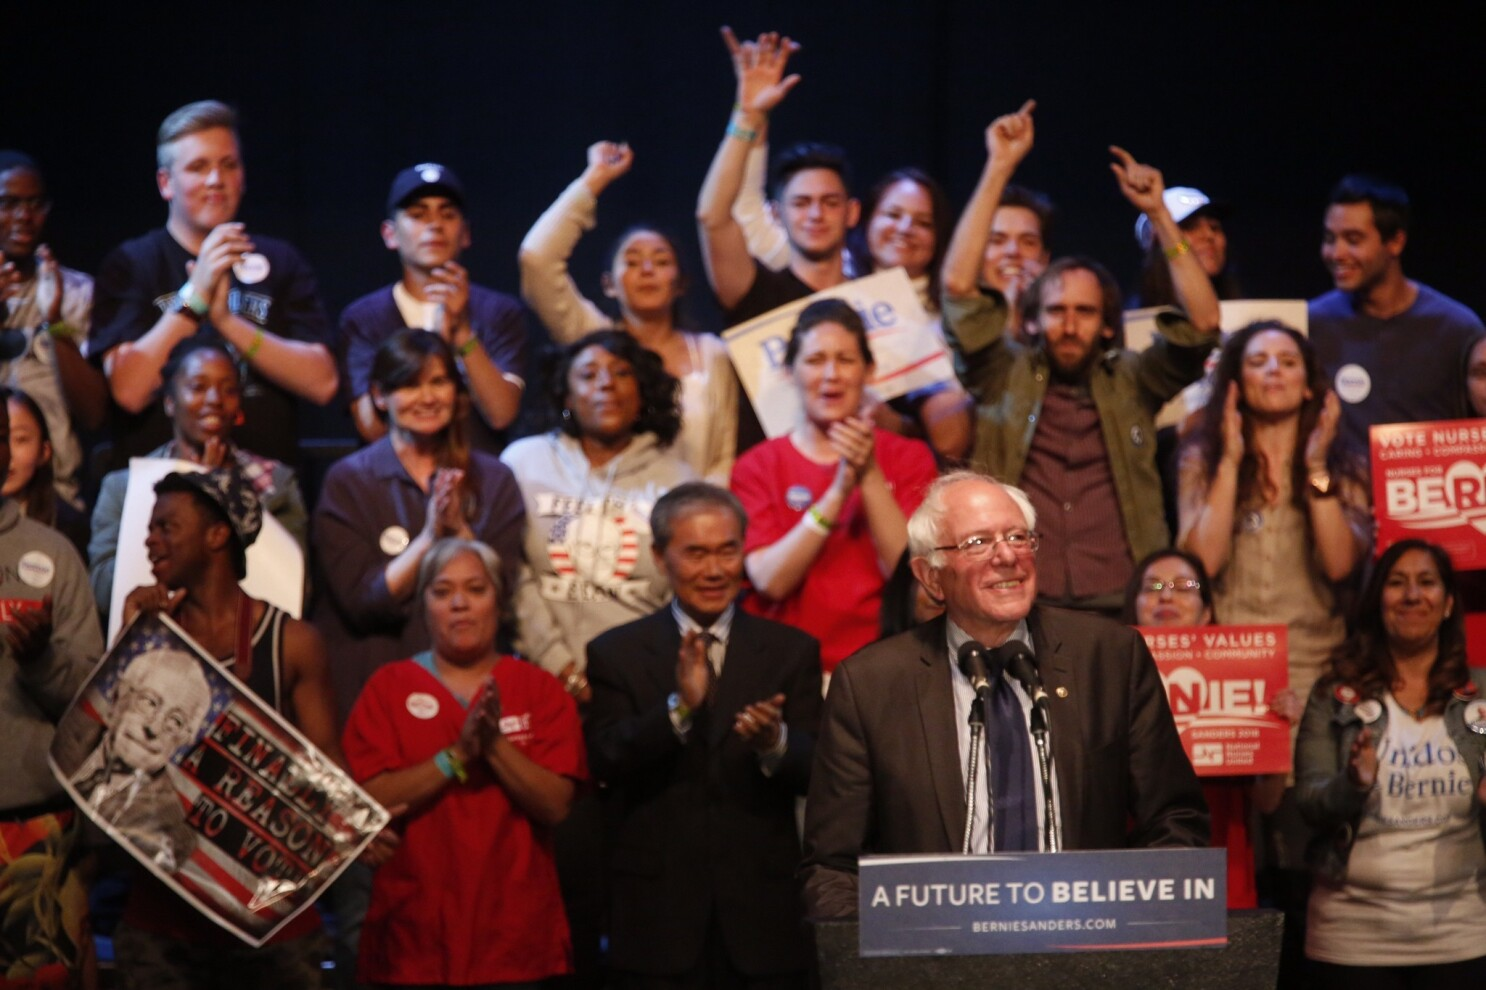 Naked girls at bernie sanders rally Topless Bernie Sanders Supporters Arrested Outside L A Rally Los Angeles Times